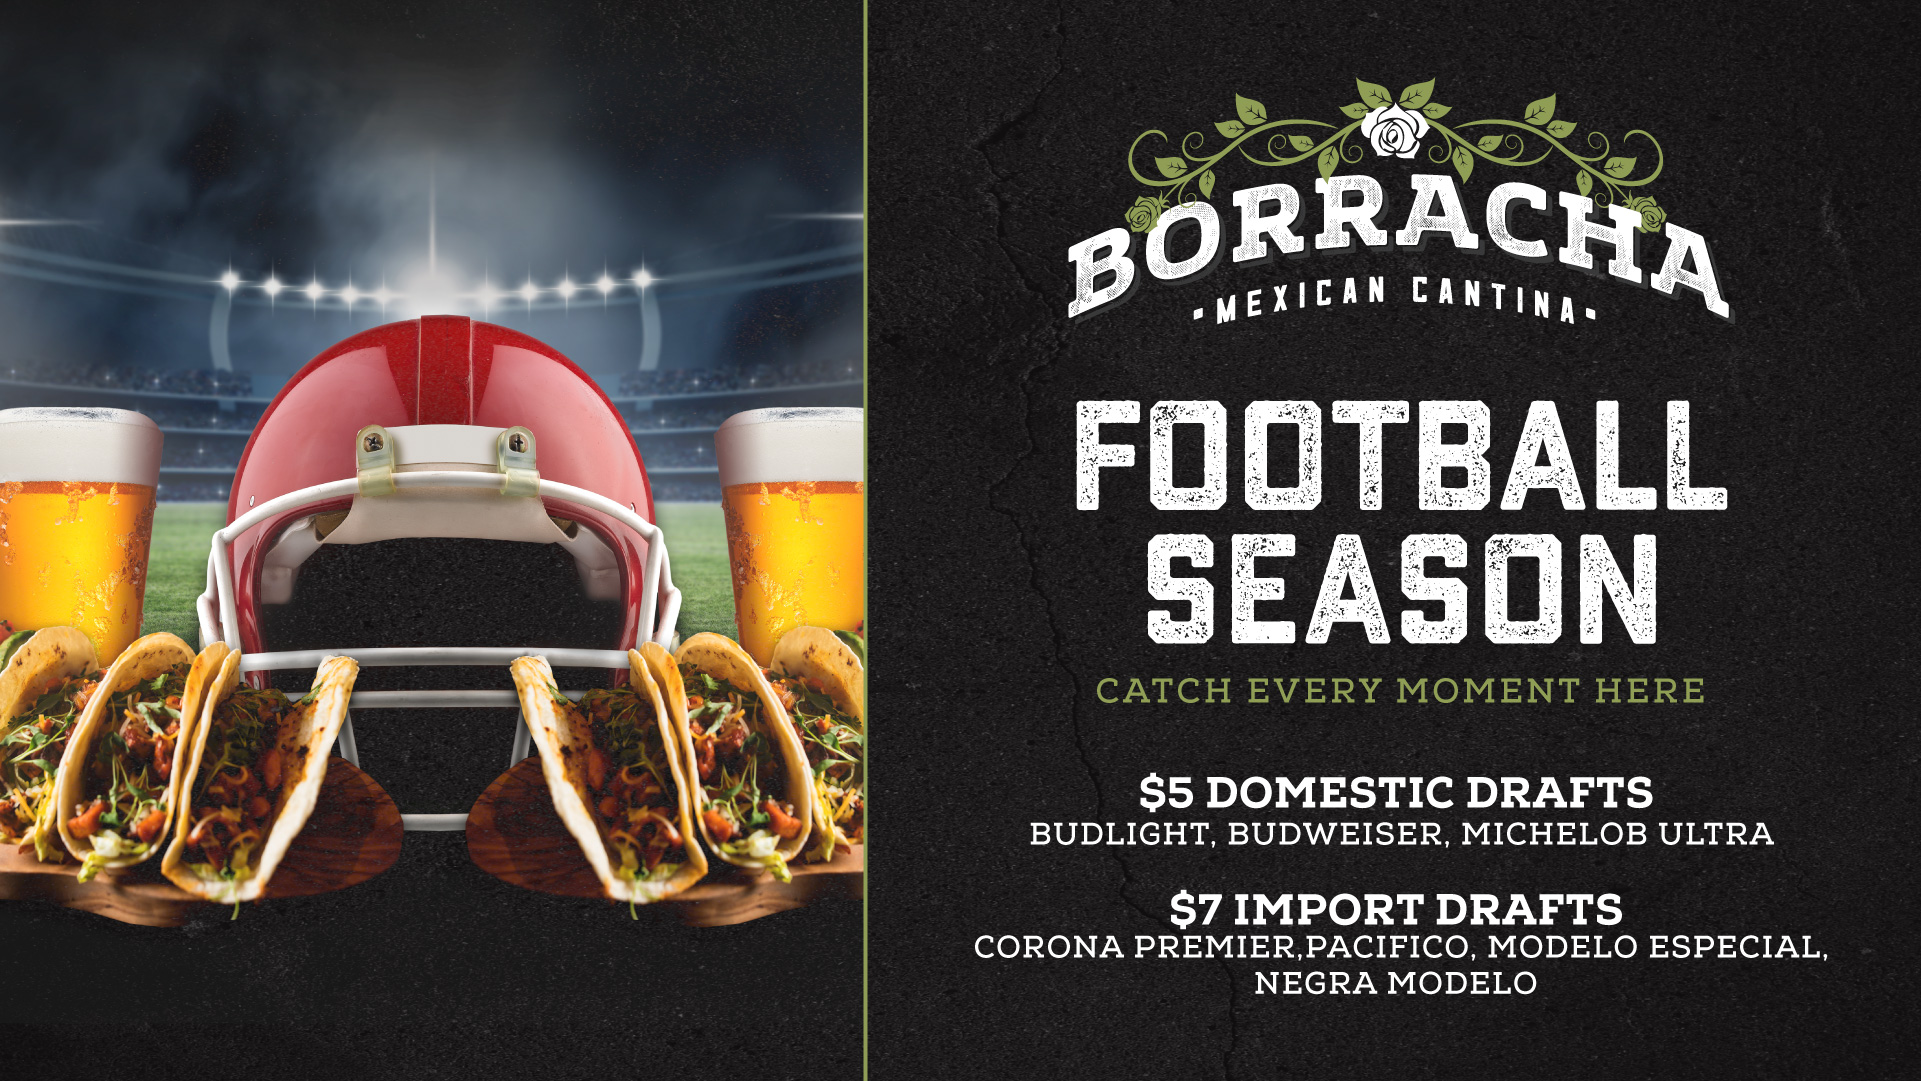 football season at borracha